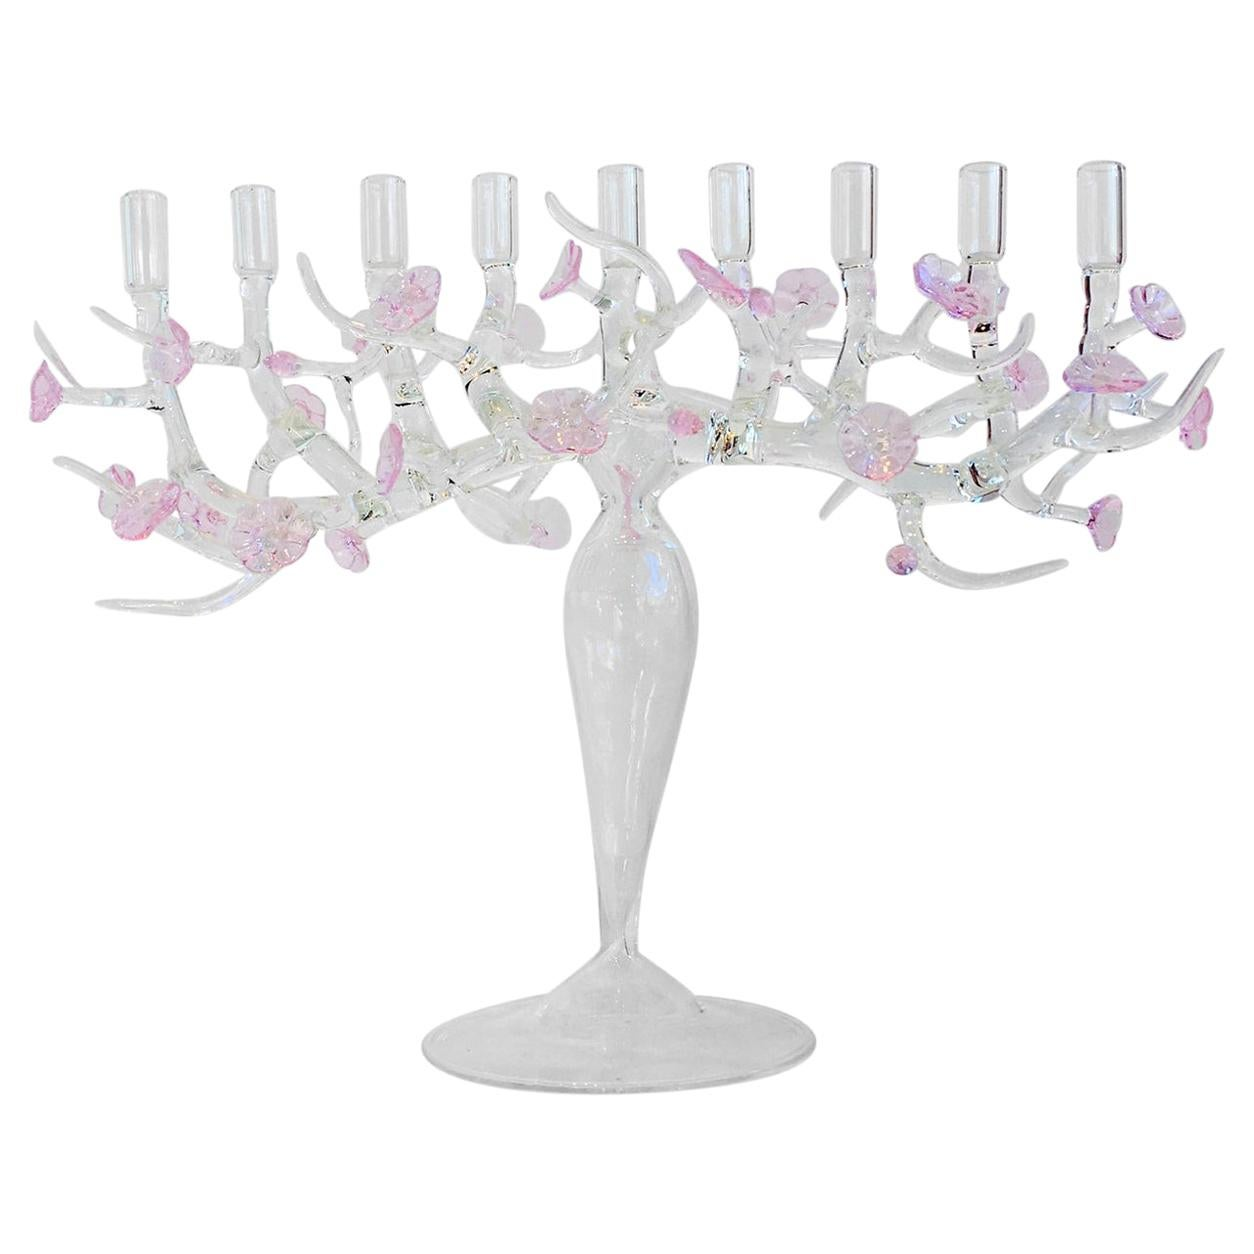 In Stock in Los Angeles, Large Cherry Blossom Menorah Glass Sculpture